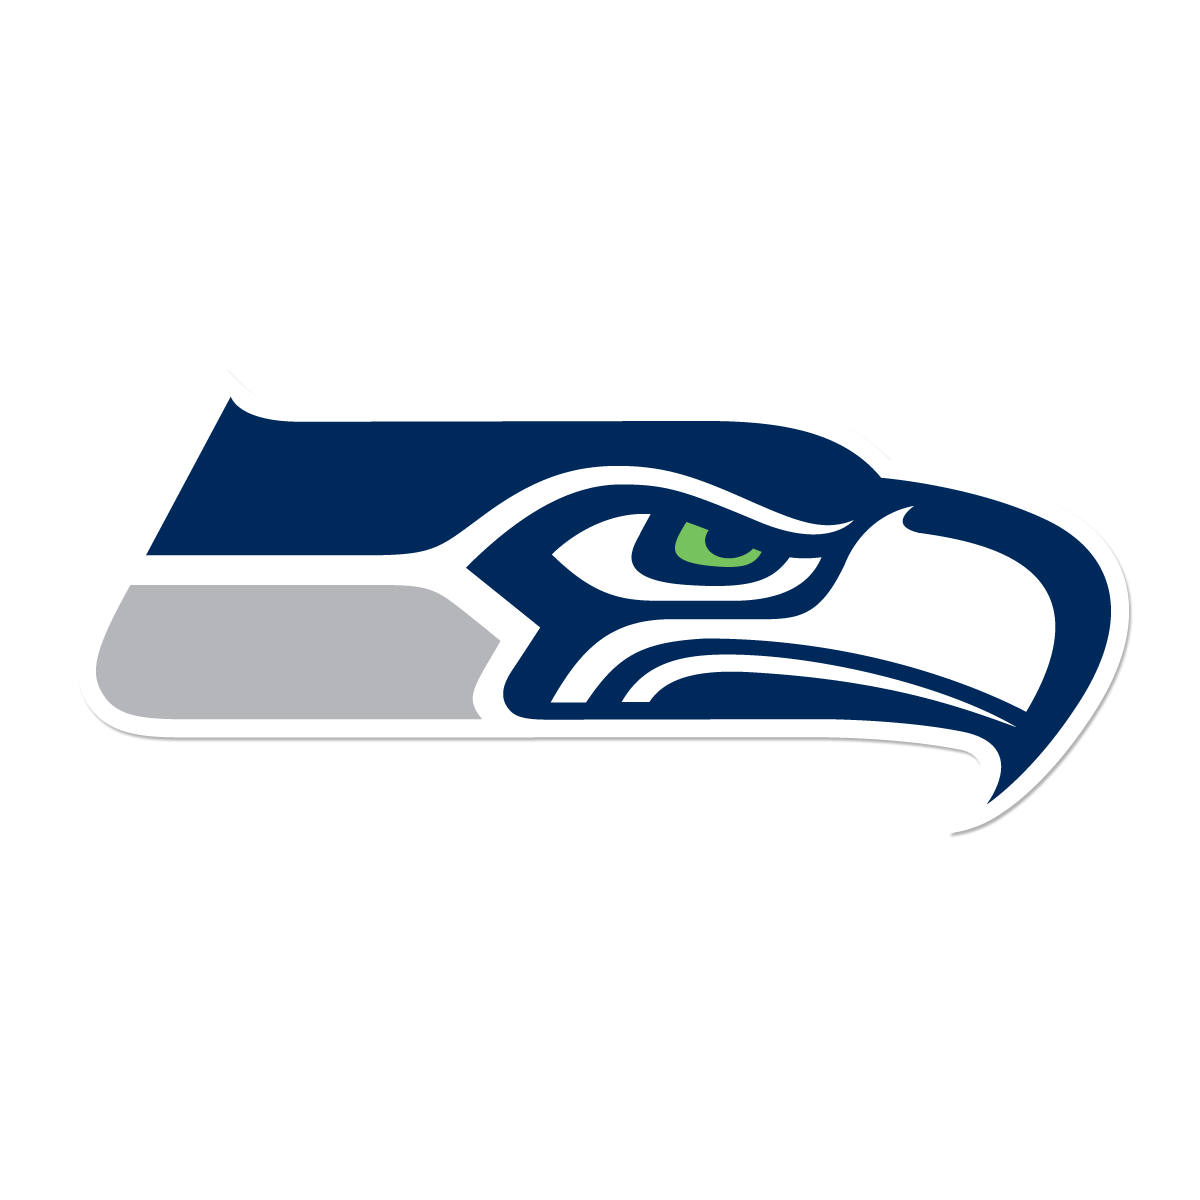 Seahawks will go to the Superbowl in 2015.